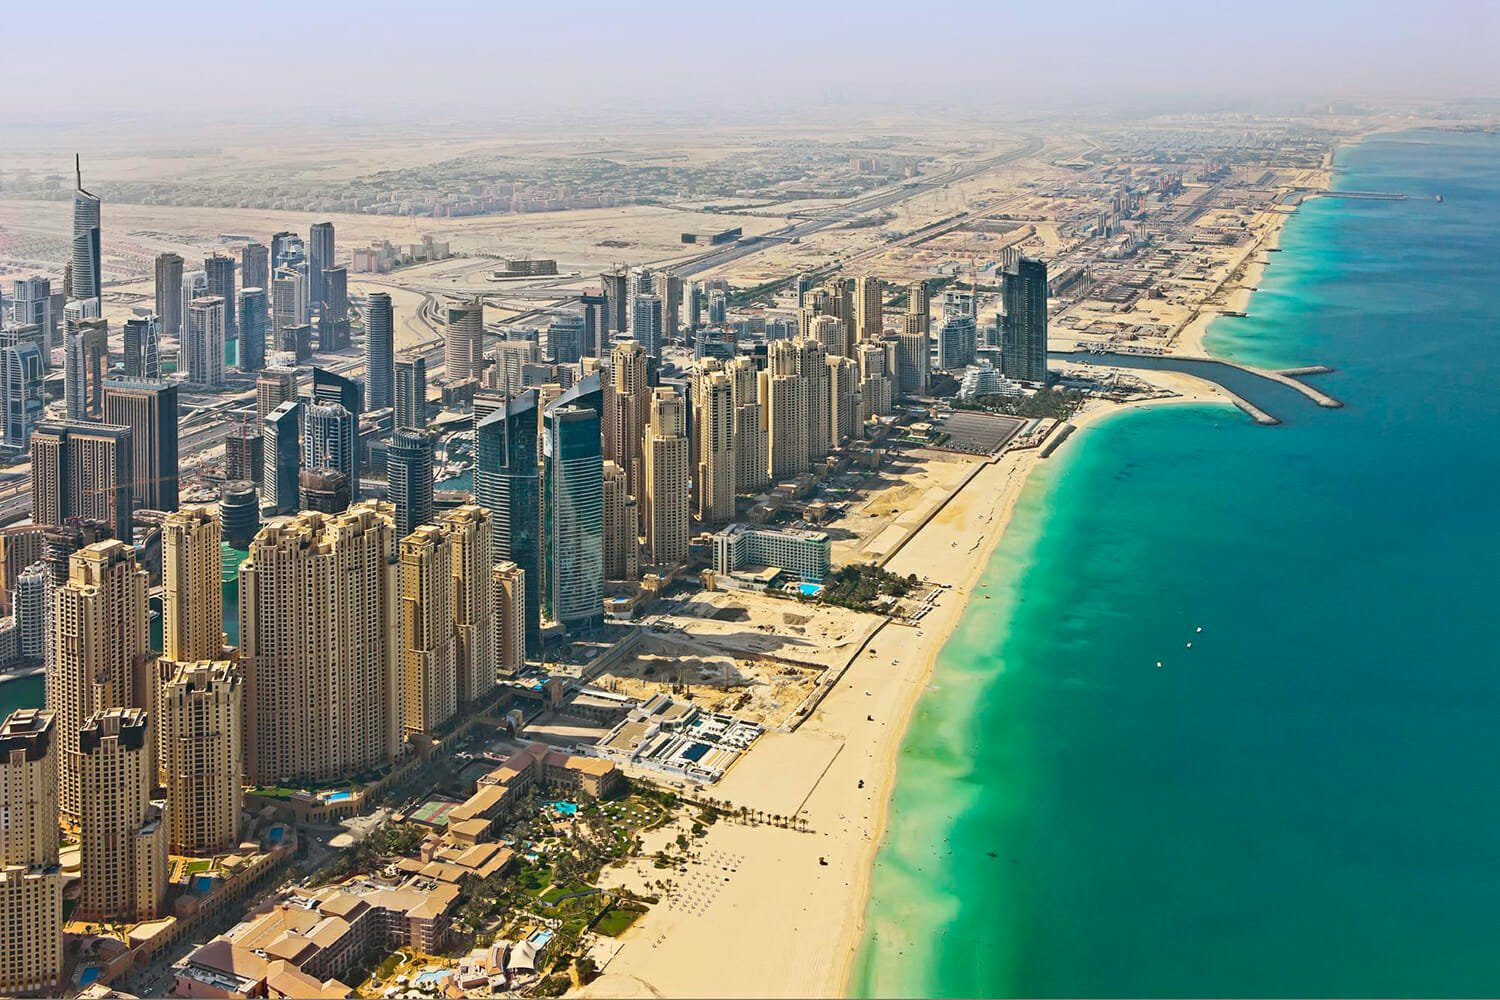 JBR - Deluxe Holiday Homes, Vacation Rentals